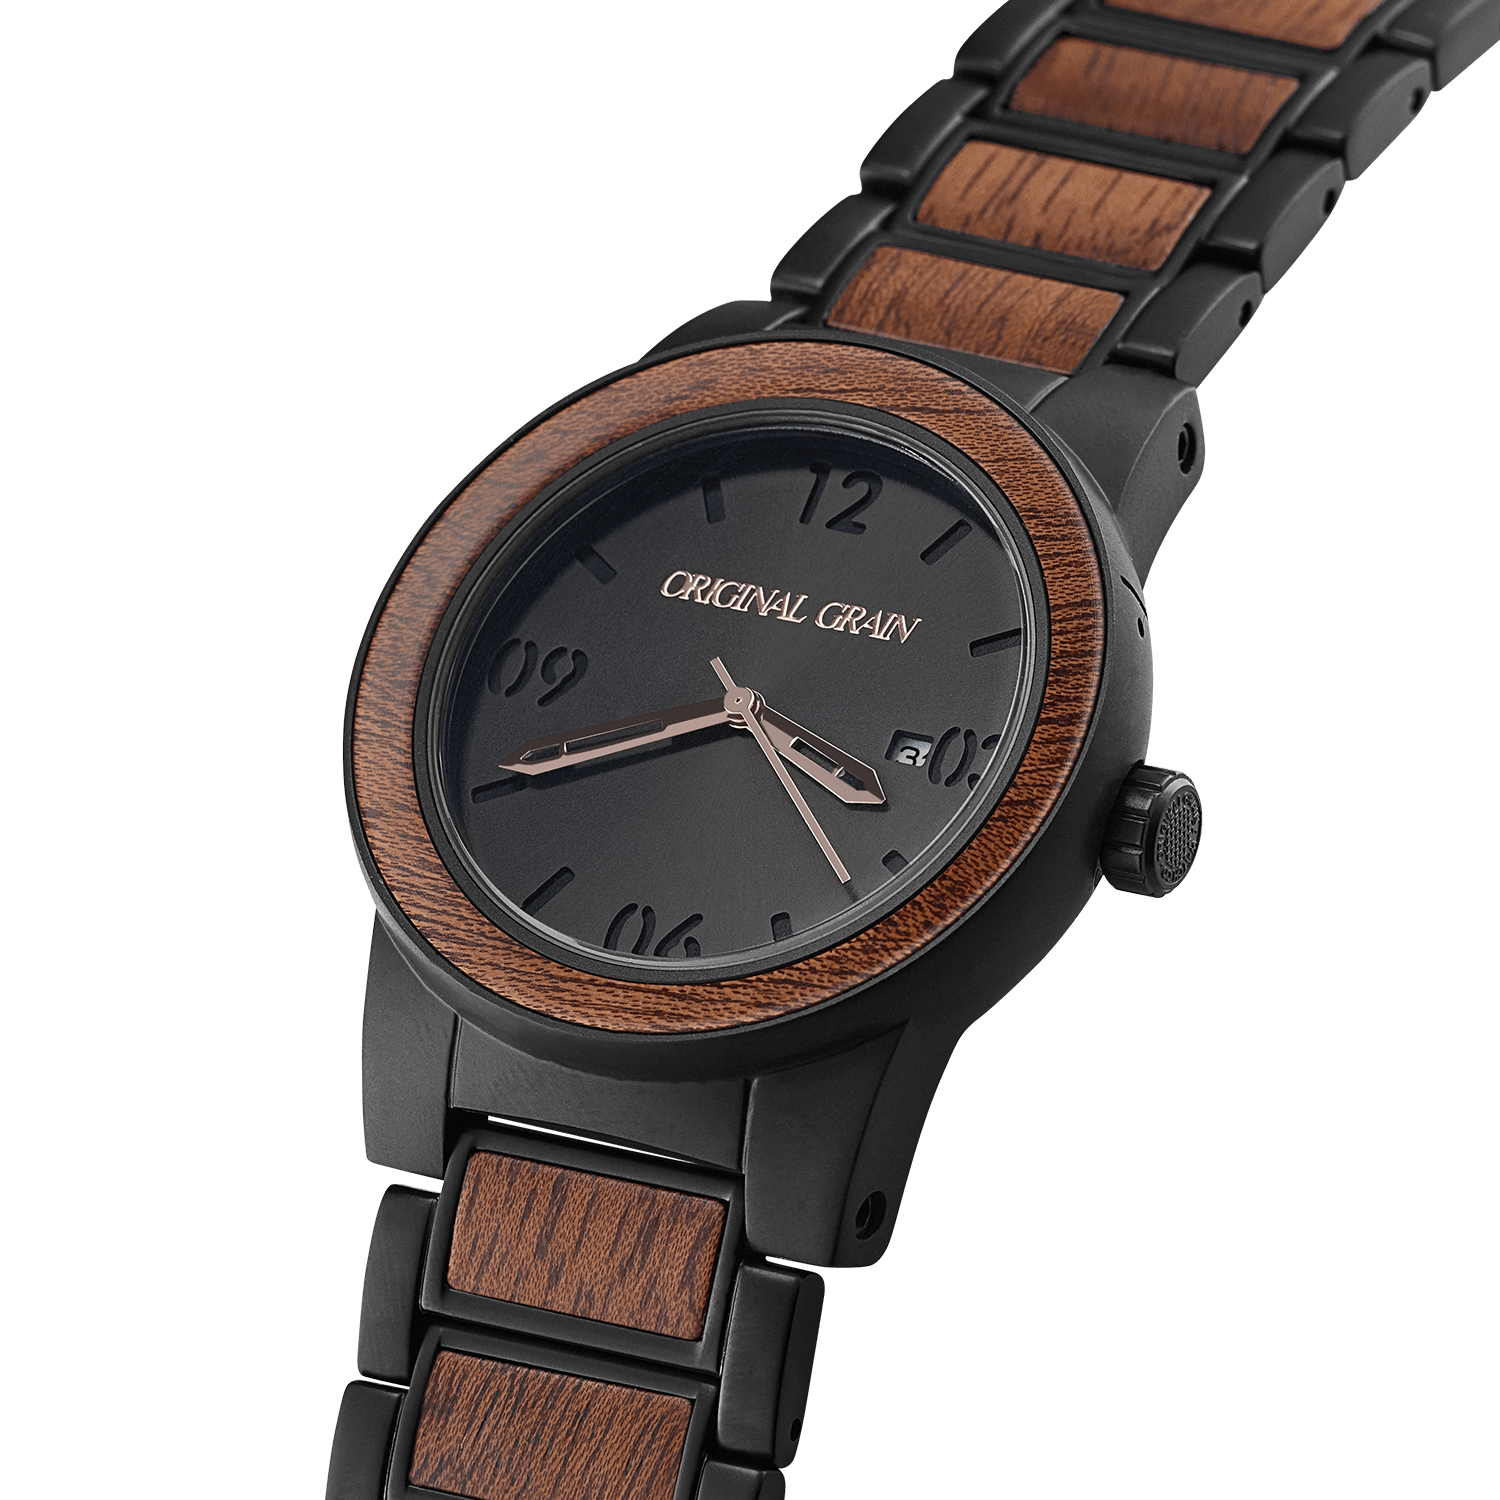 watch original wood barrel the grain watches awesomer